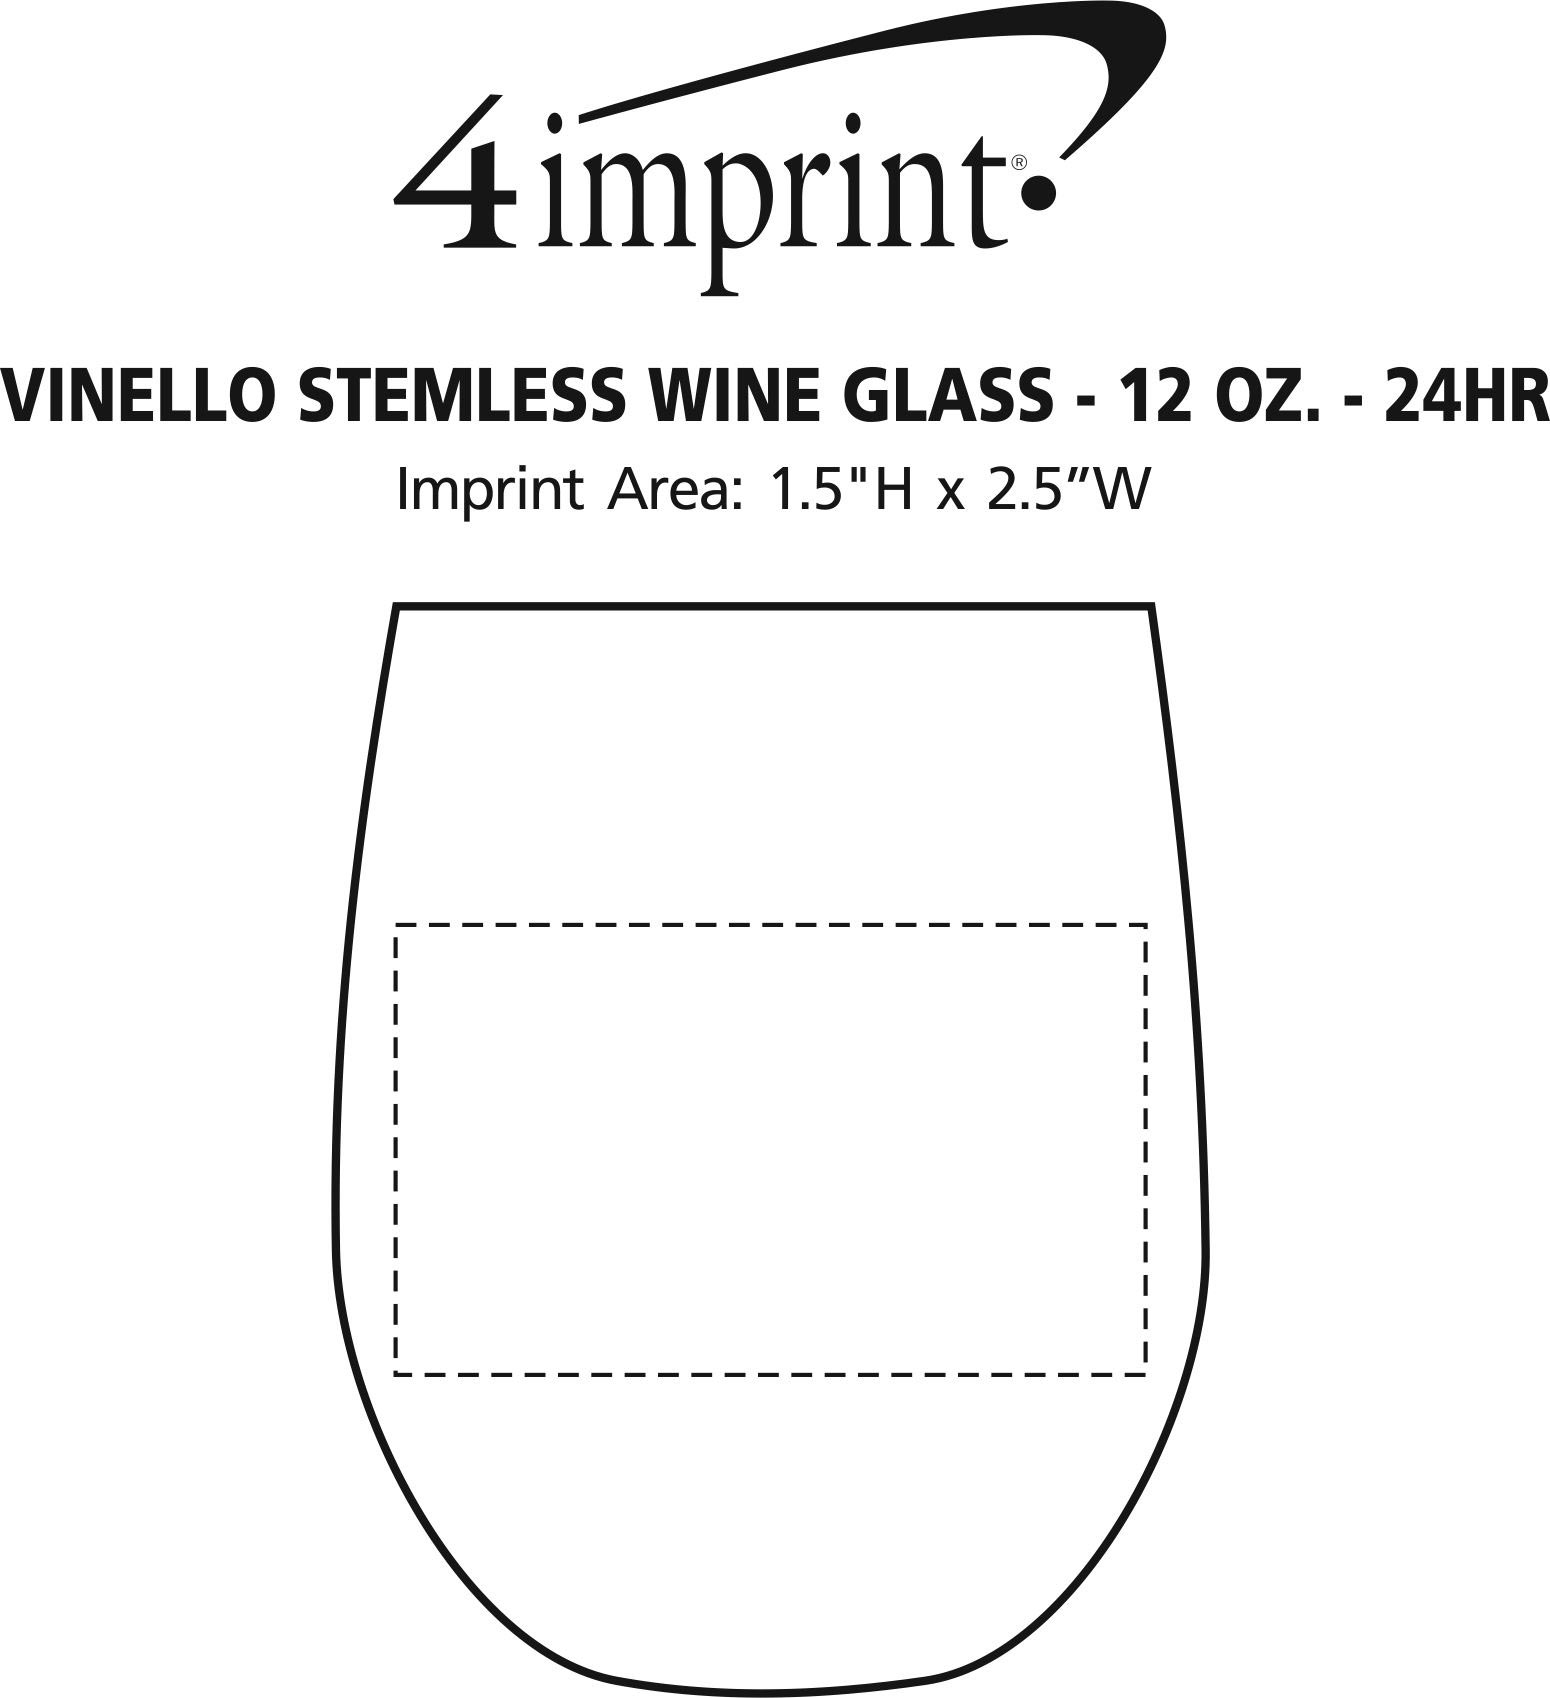 Imprint Area of Vinello Stemless Wine Glass - 12 oz. - 24 hr